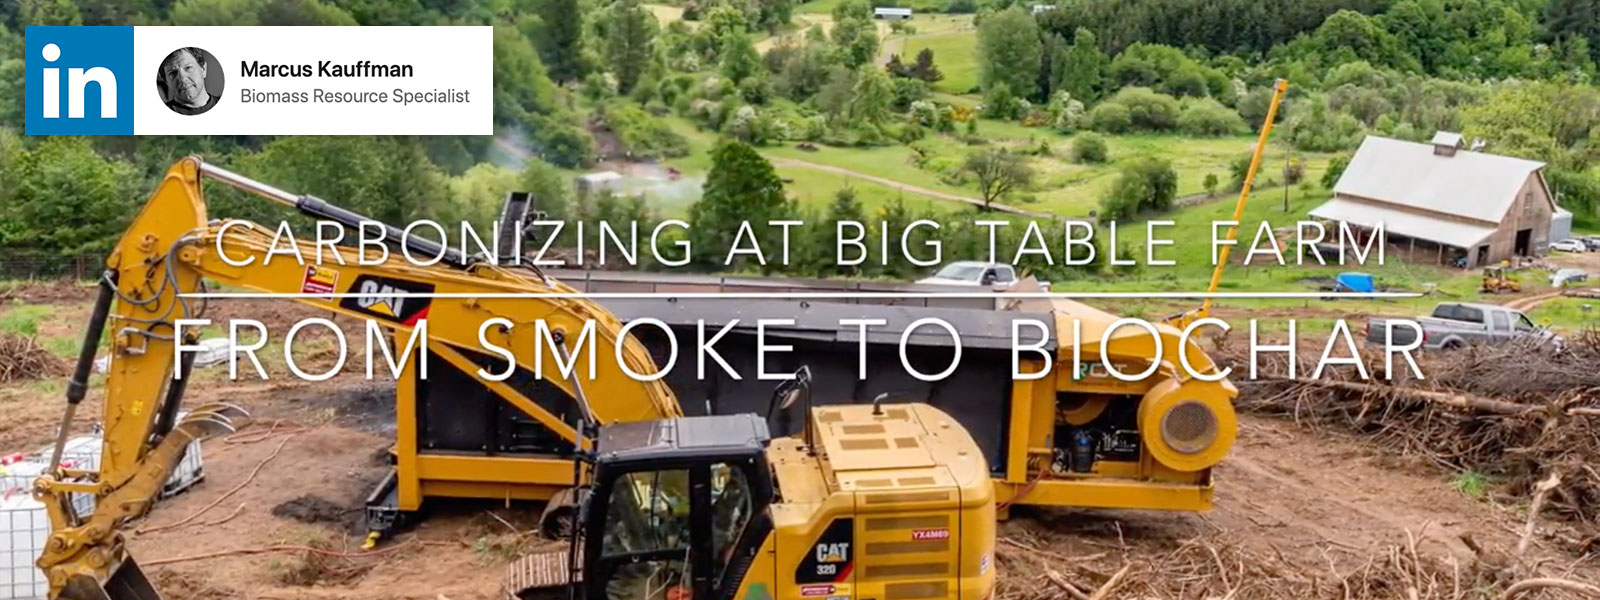 Carbonizing at Big Table Farm. From Smoke to Biochar